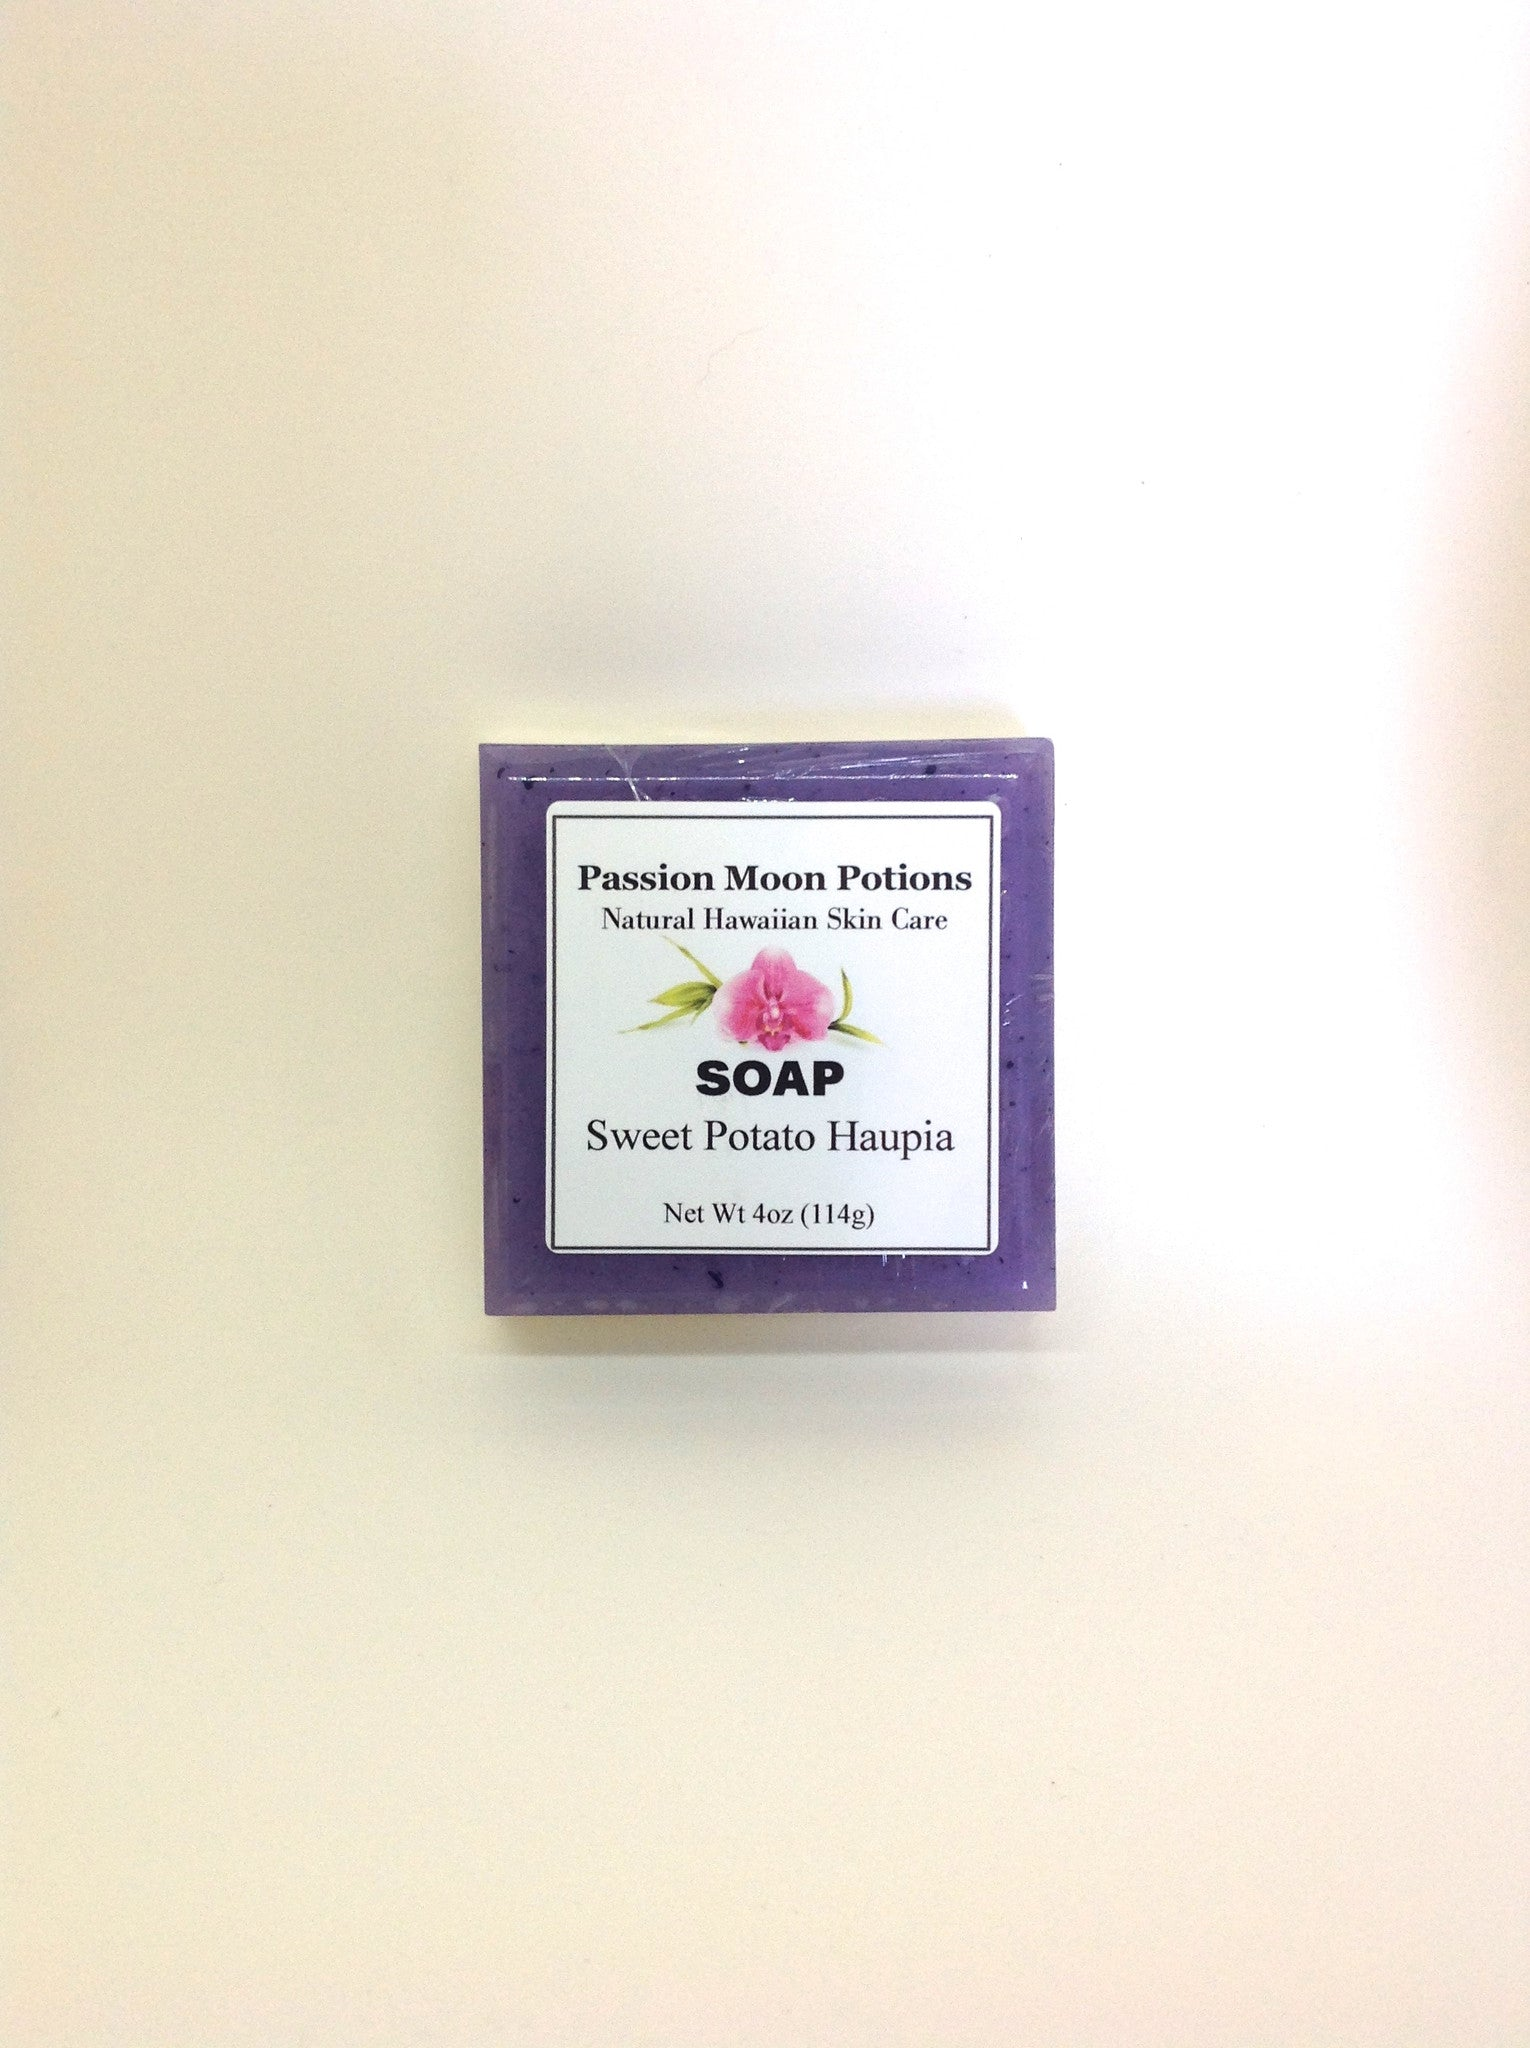 Sweet Potato Haupia Soap - Passion Moon Potions - 2